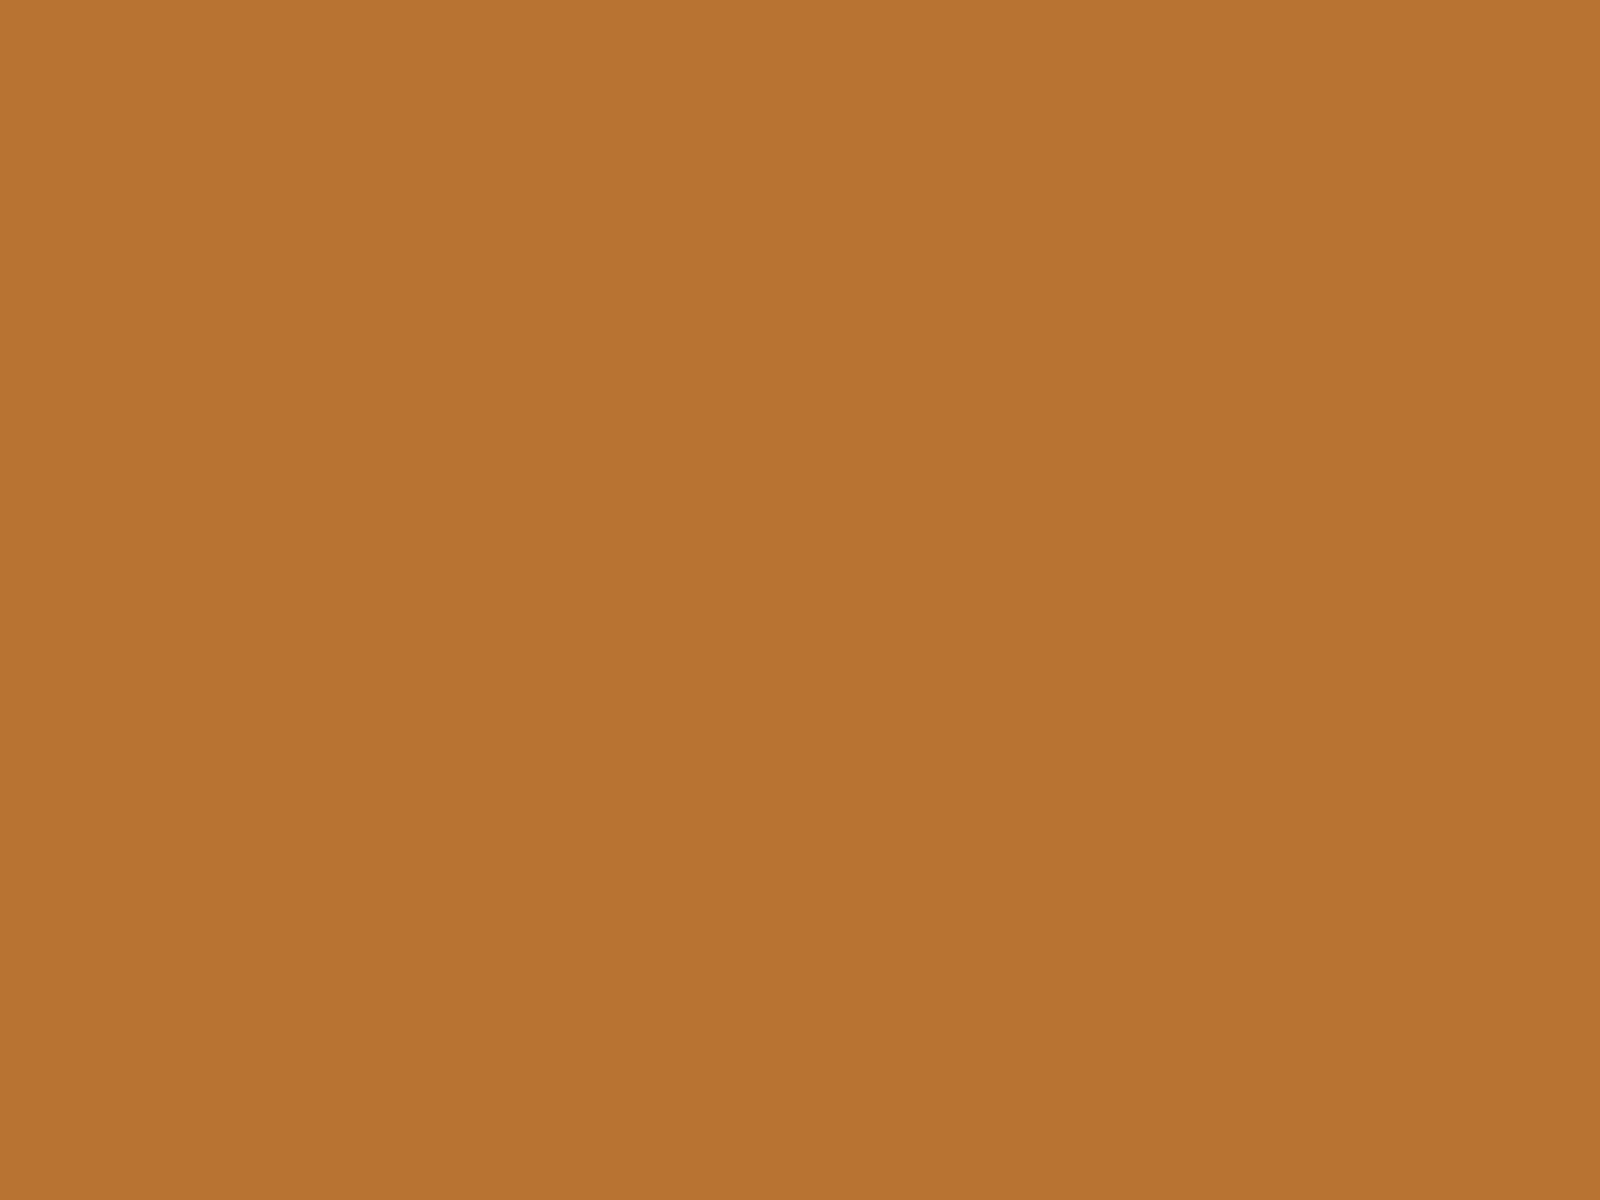 1600x1200 Copper Solid Color Background